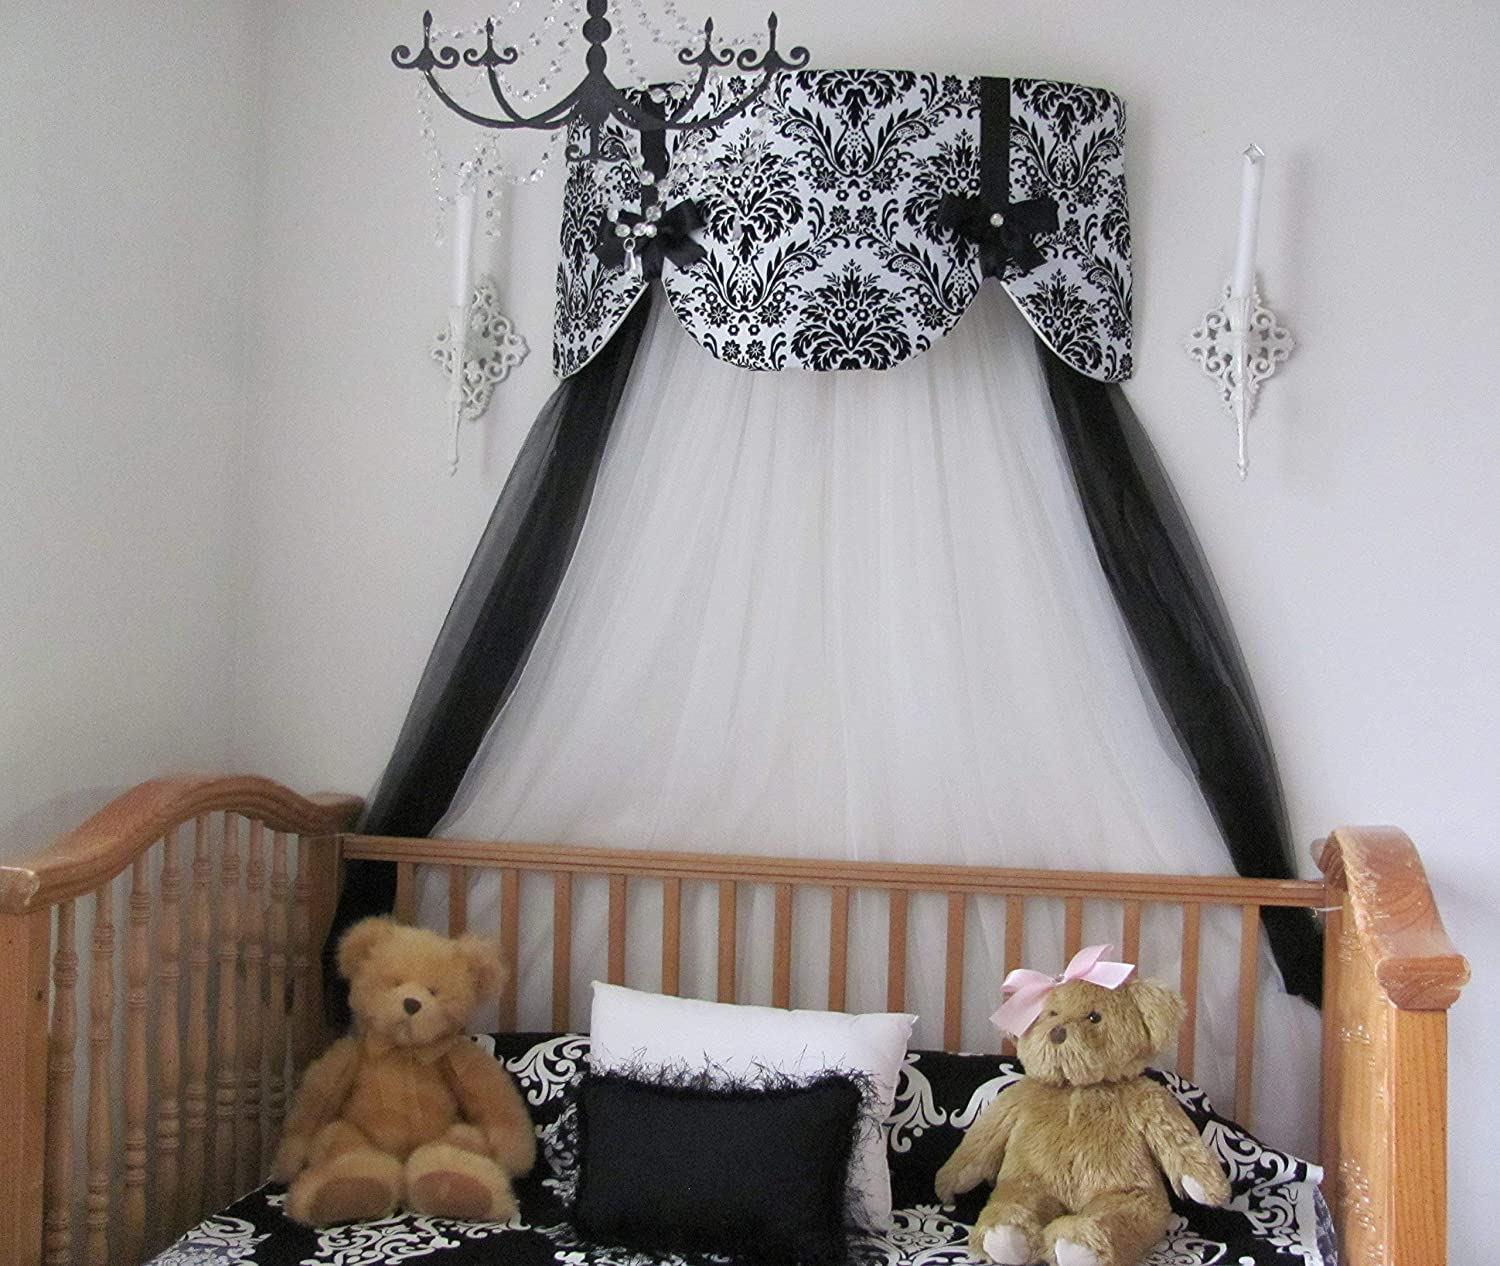 Amazon.com Crib Canopy Nursery Bed Crown Cornice Teester Swag Suzette Bows Damask Bedroom FrEE Curtains Baby Girls Custom Design So Zoey Boutique SALE ... & Amazon.com: Crib Canopy Nursery Bed Crown Cornice Teester Swag ...